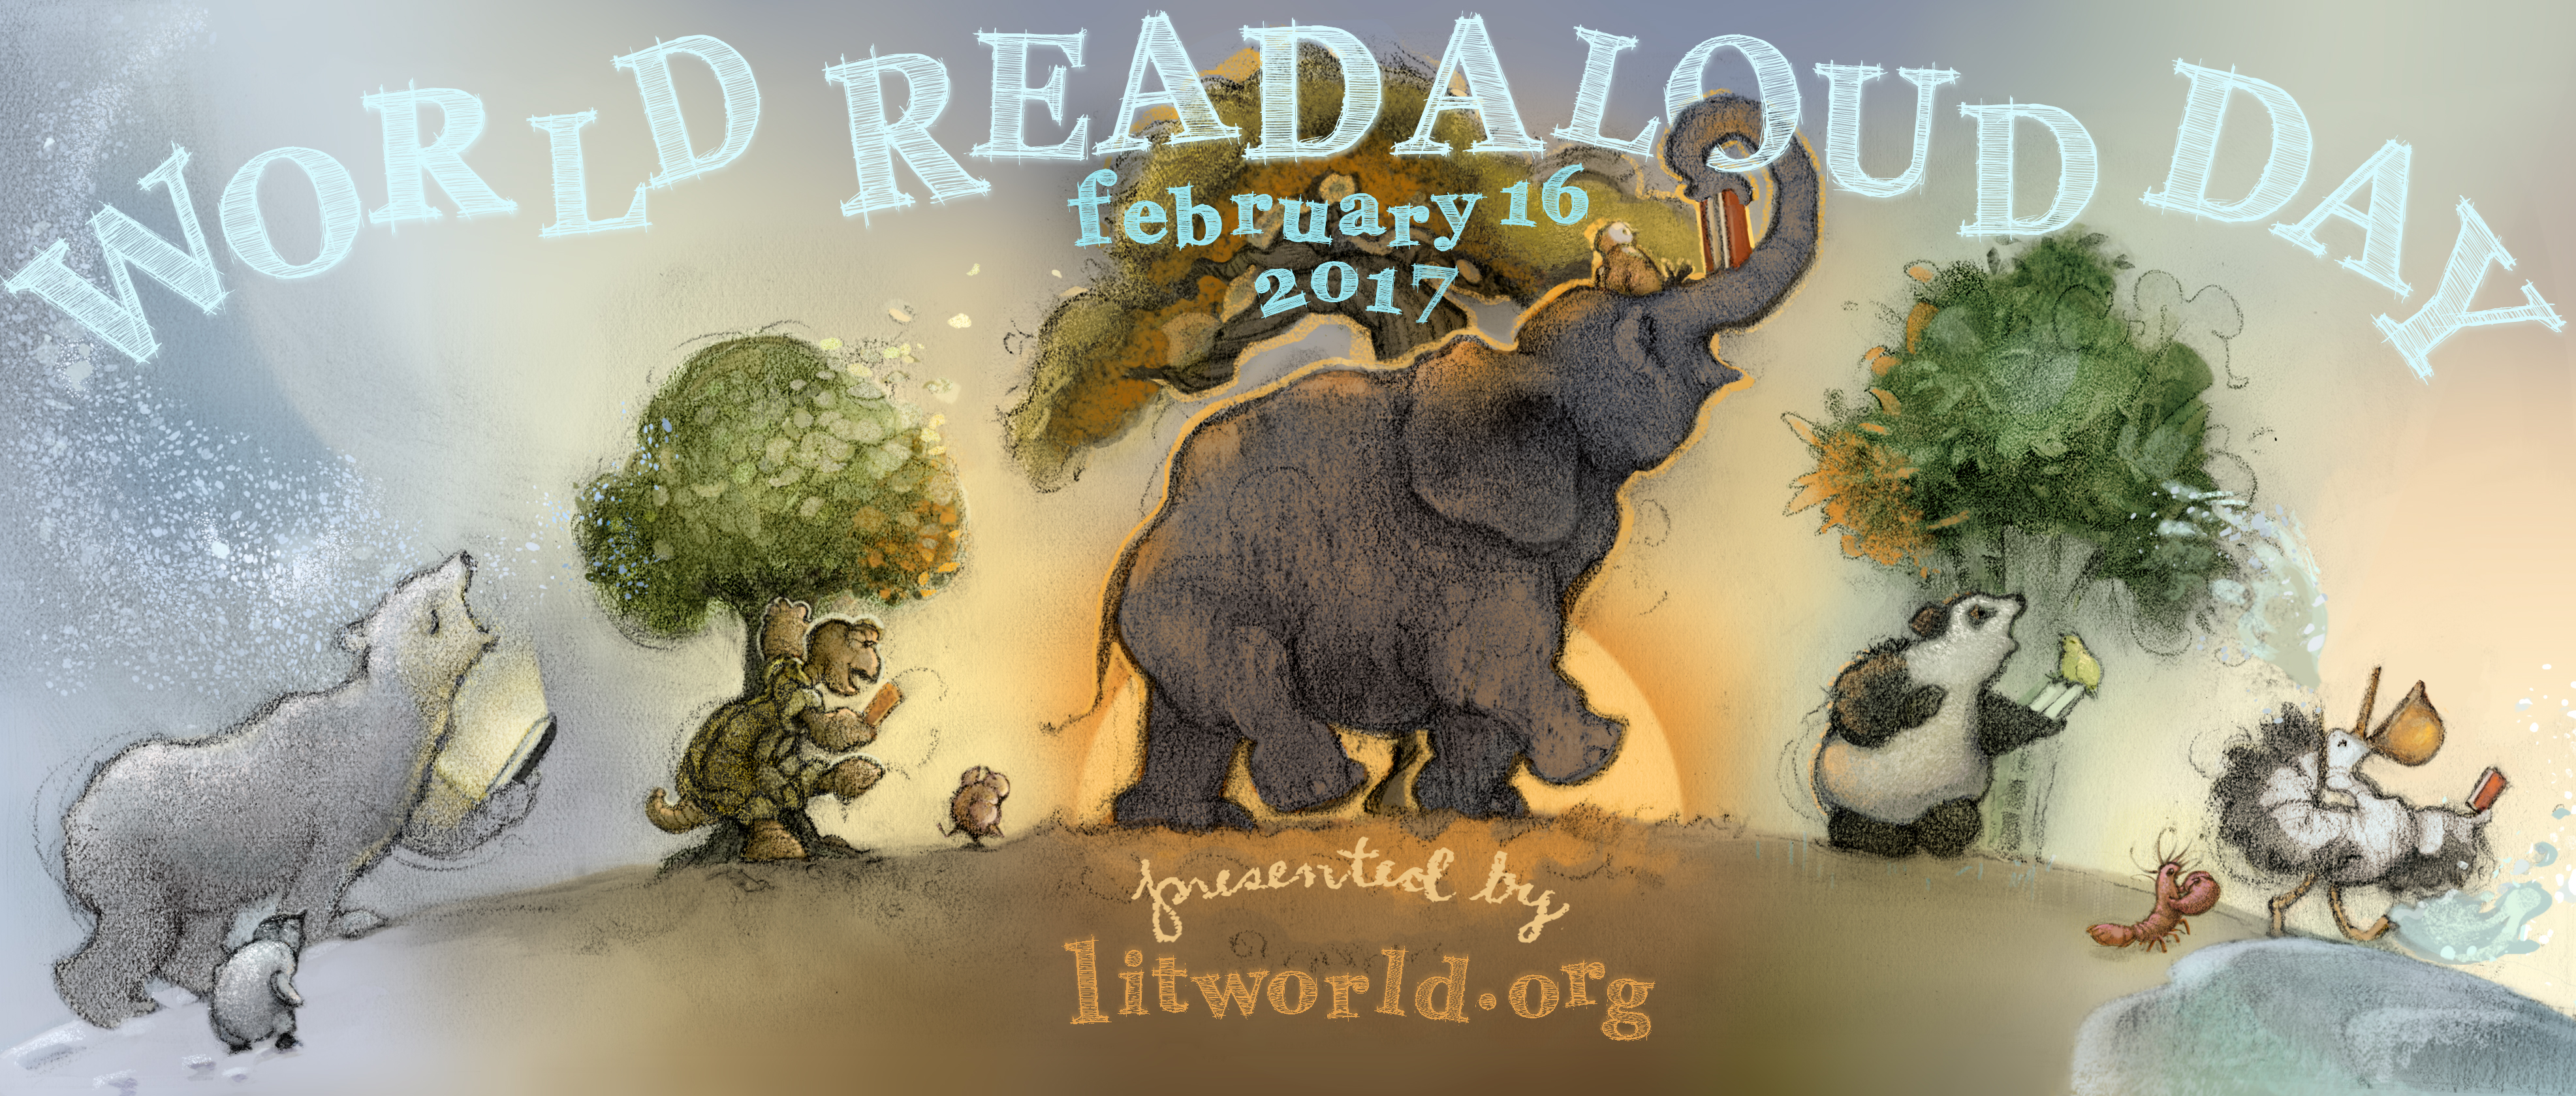 Let's All Connect for World Read Aloud Day 2017